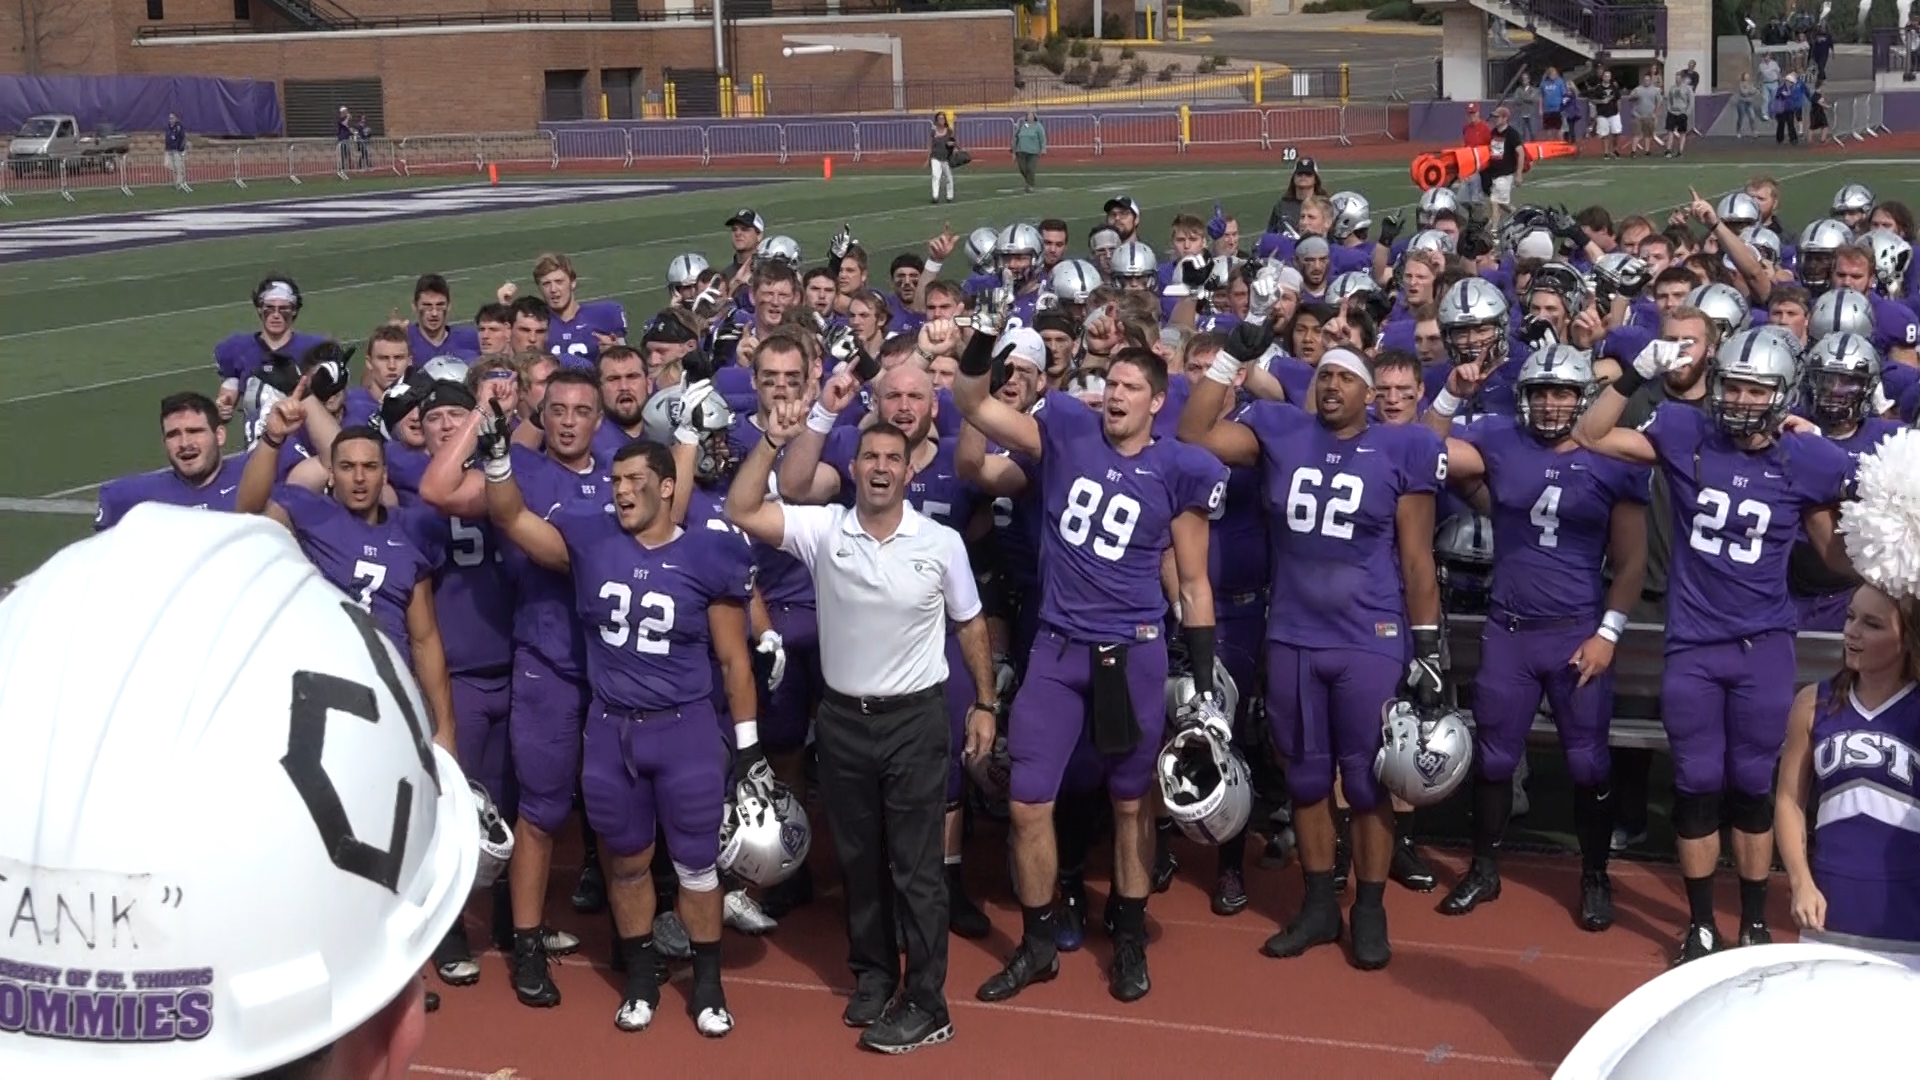 Pride and passion fuel Tommies' undefeated record